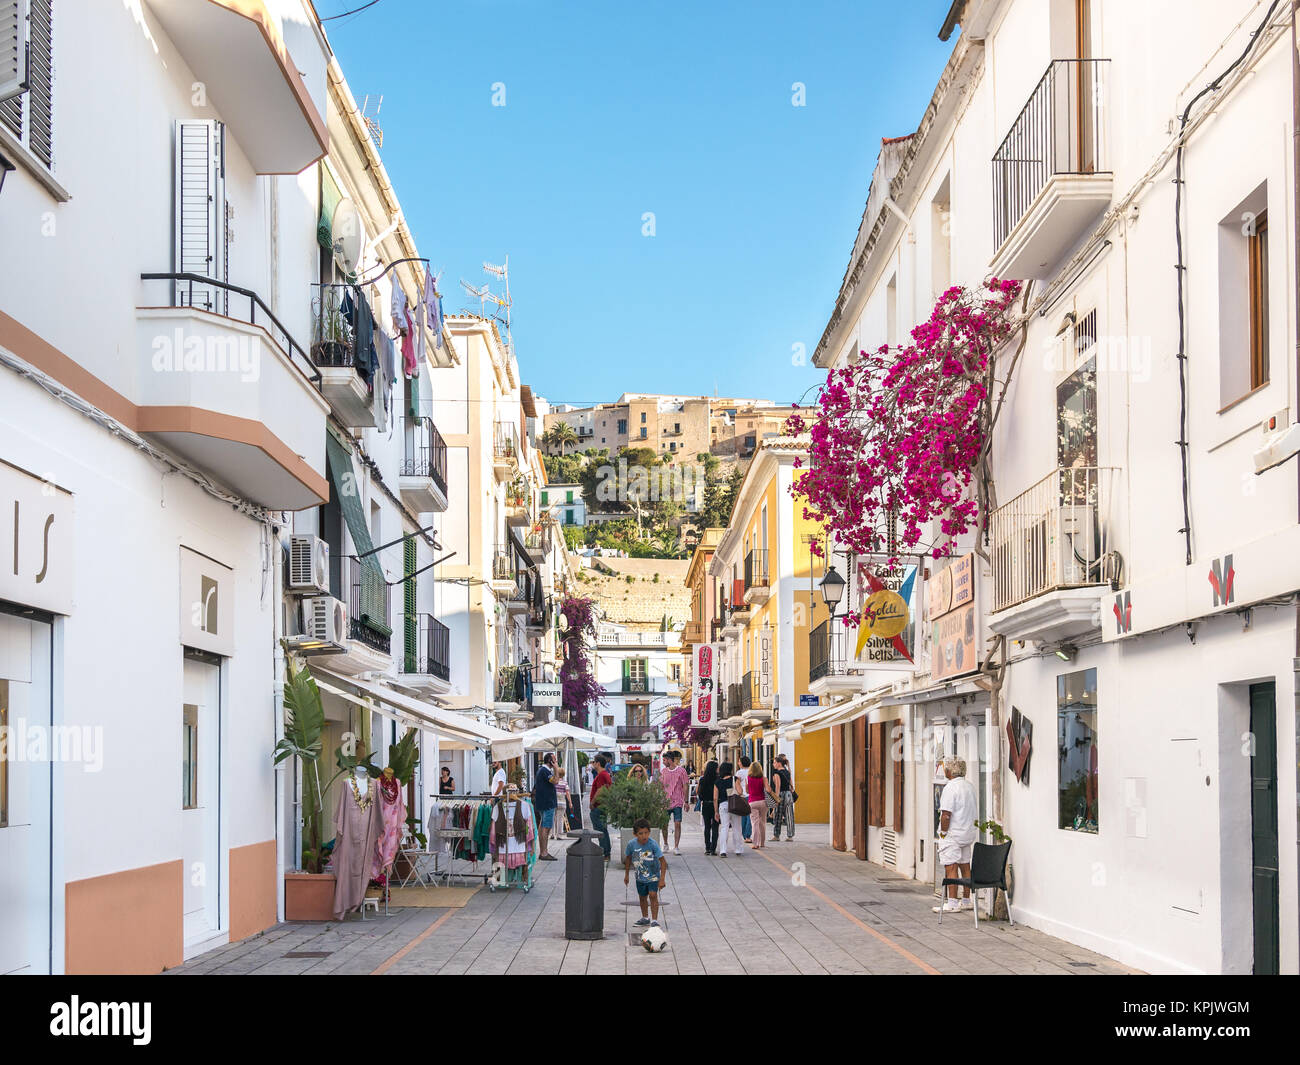 Ibiza, Spain - May 23, 2015. Little cozy and white streets in the center of the Ibiza old town. Stock Photo